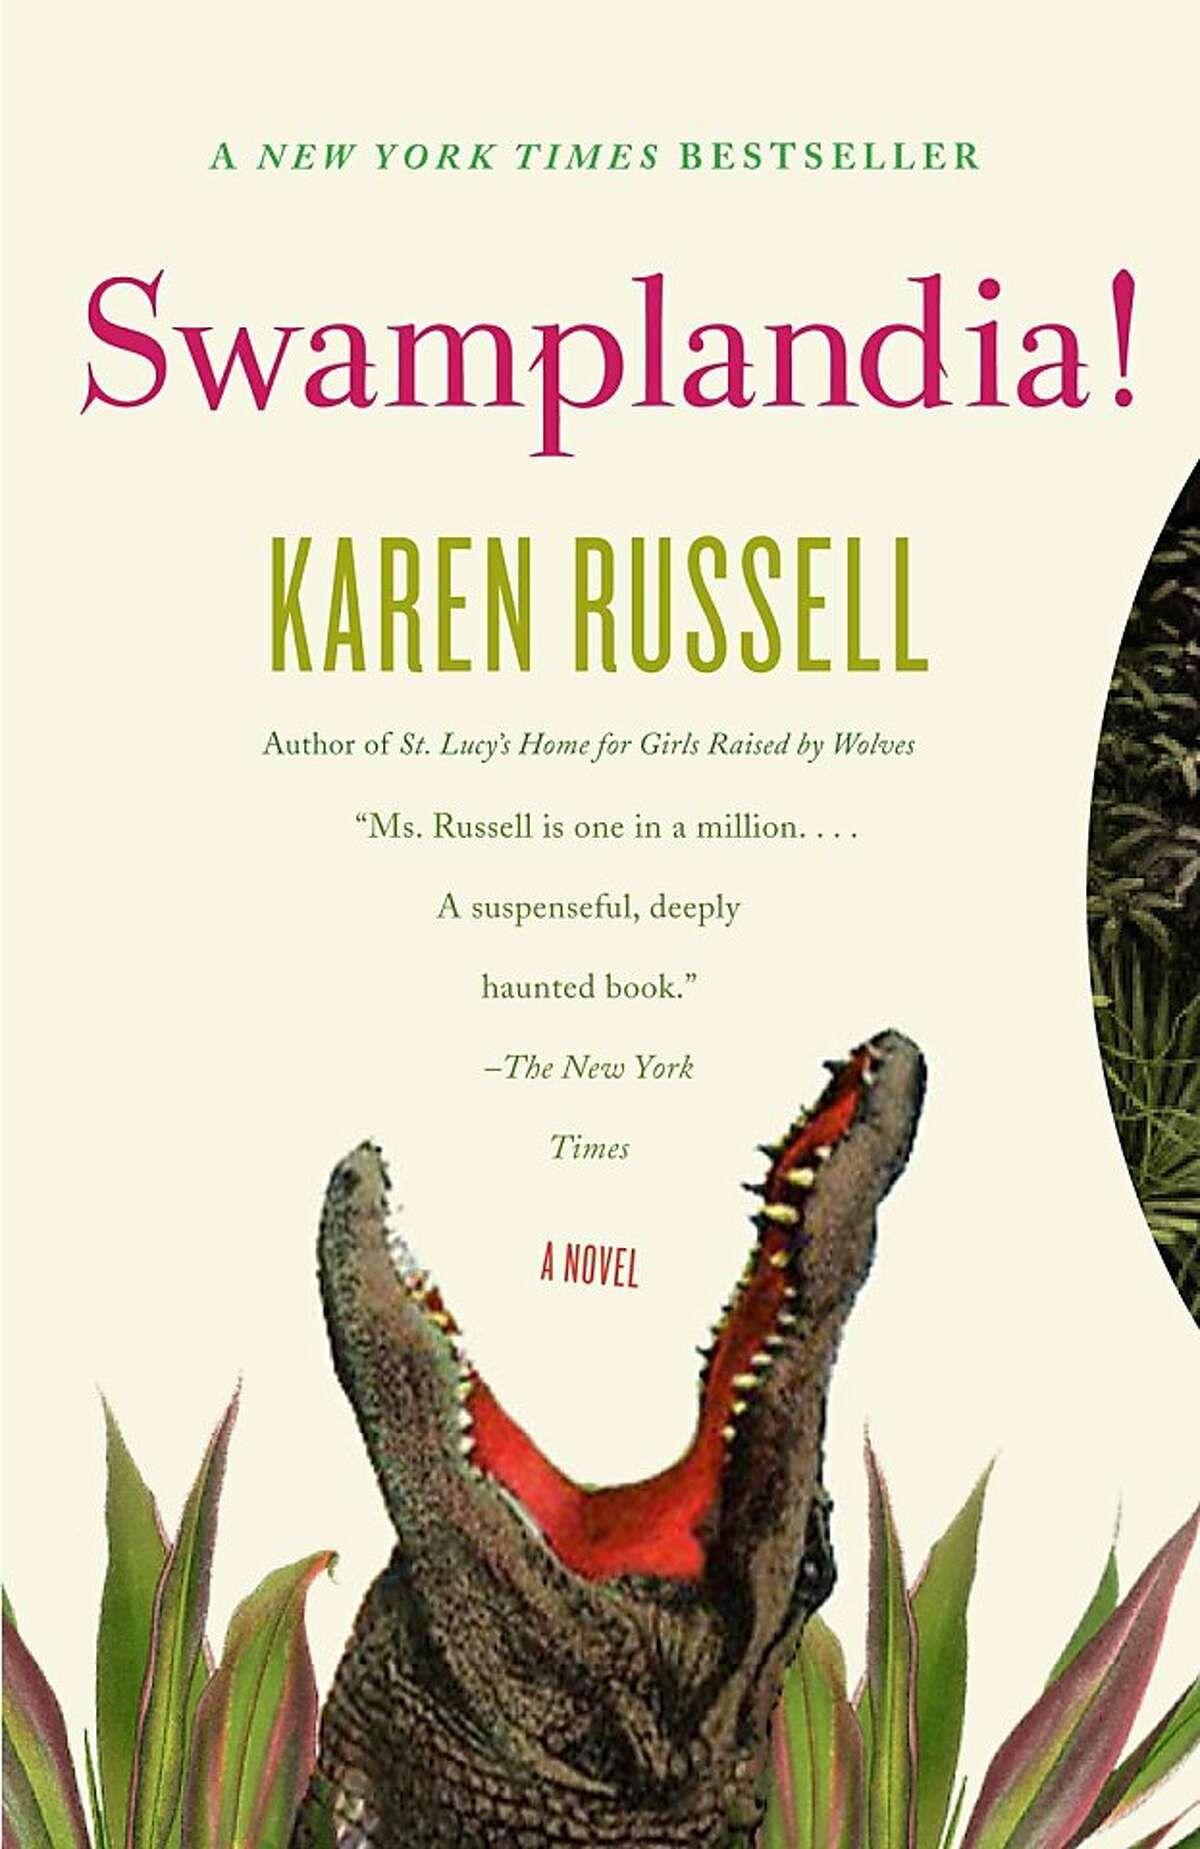 Karen Russell's debut novel about a 13-year-old alligator wrestler trying to save her family's rundown theme park has made a big splash.